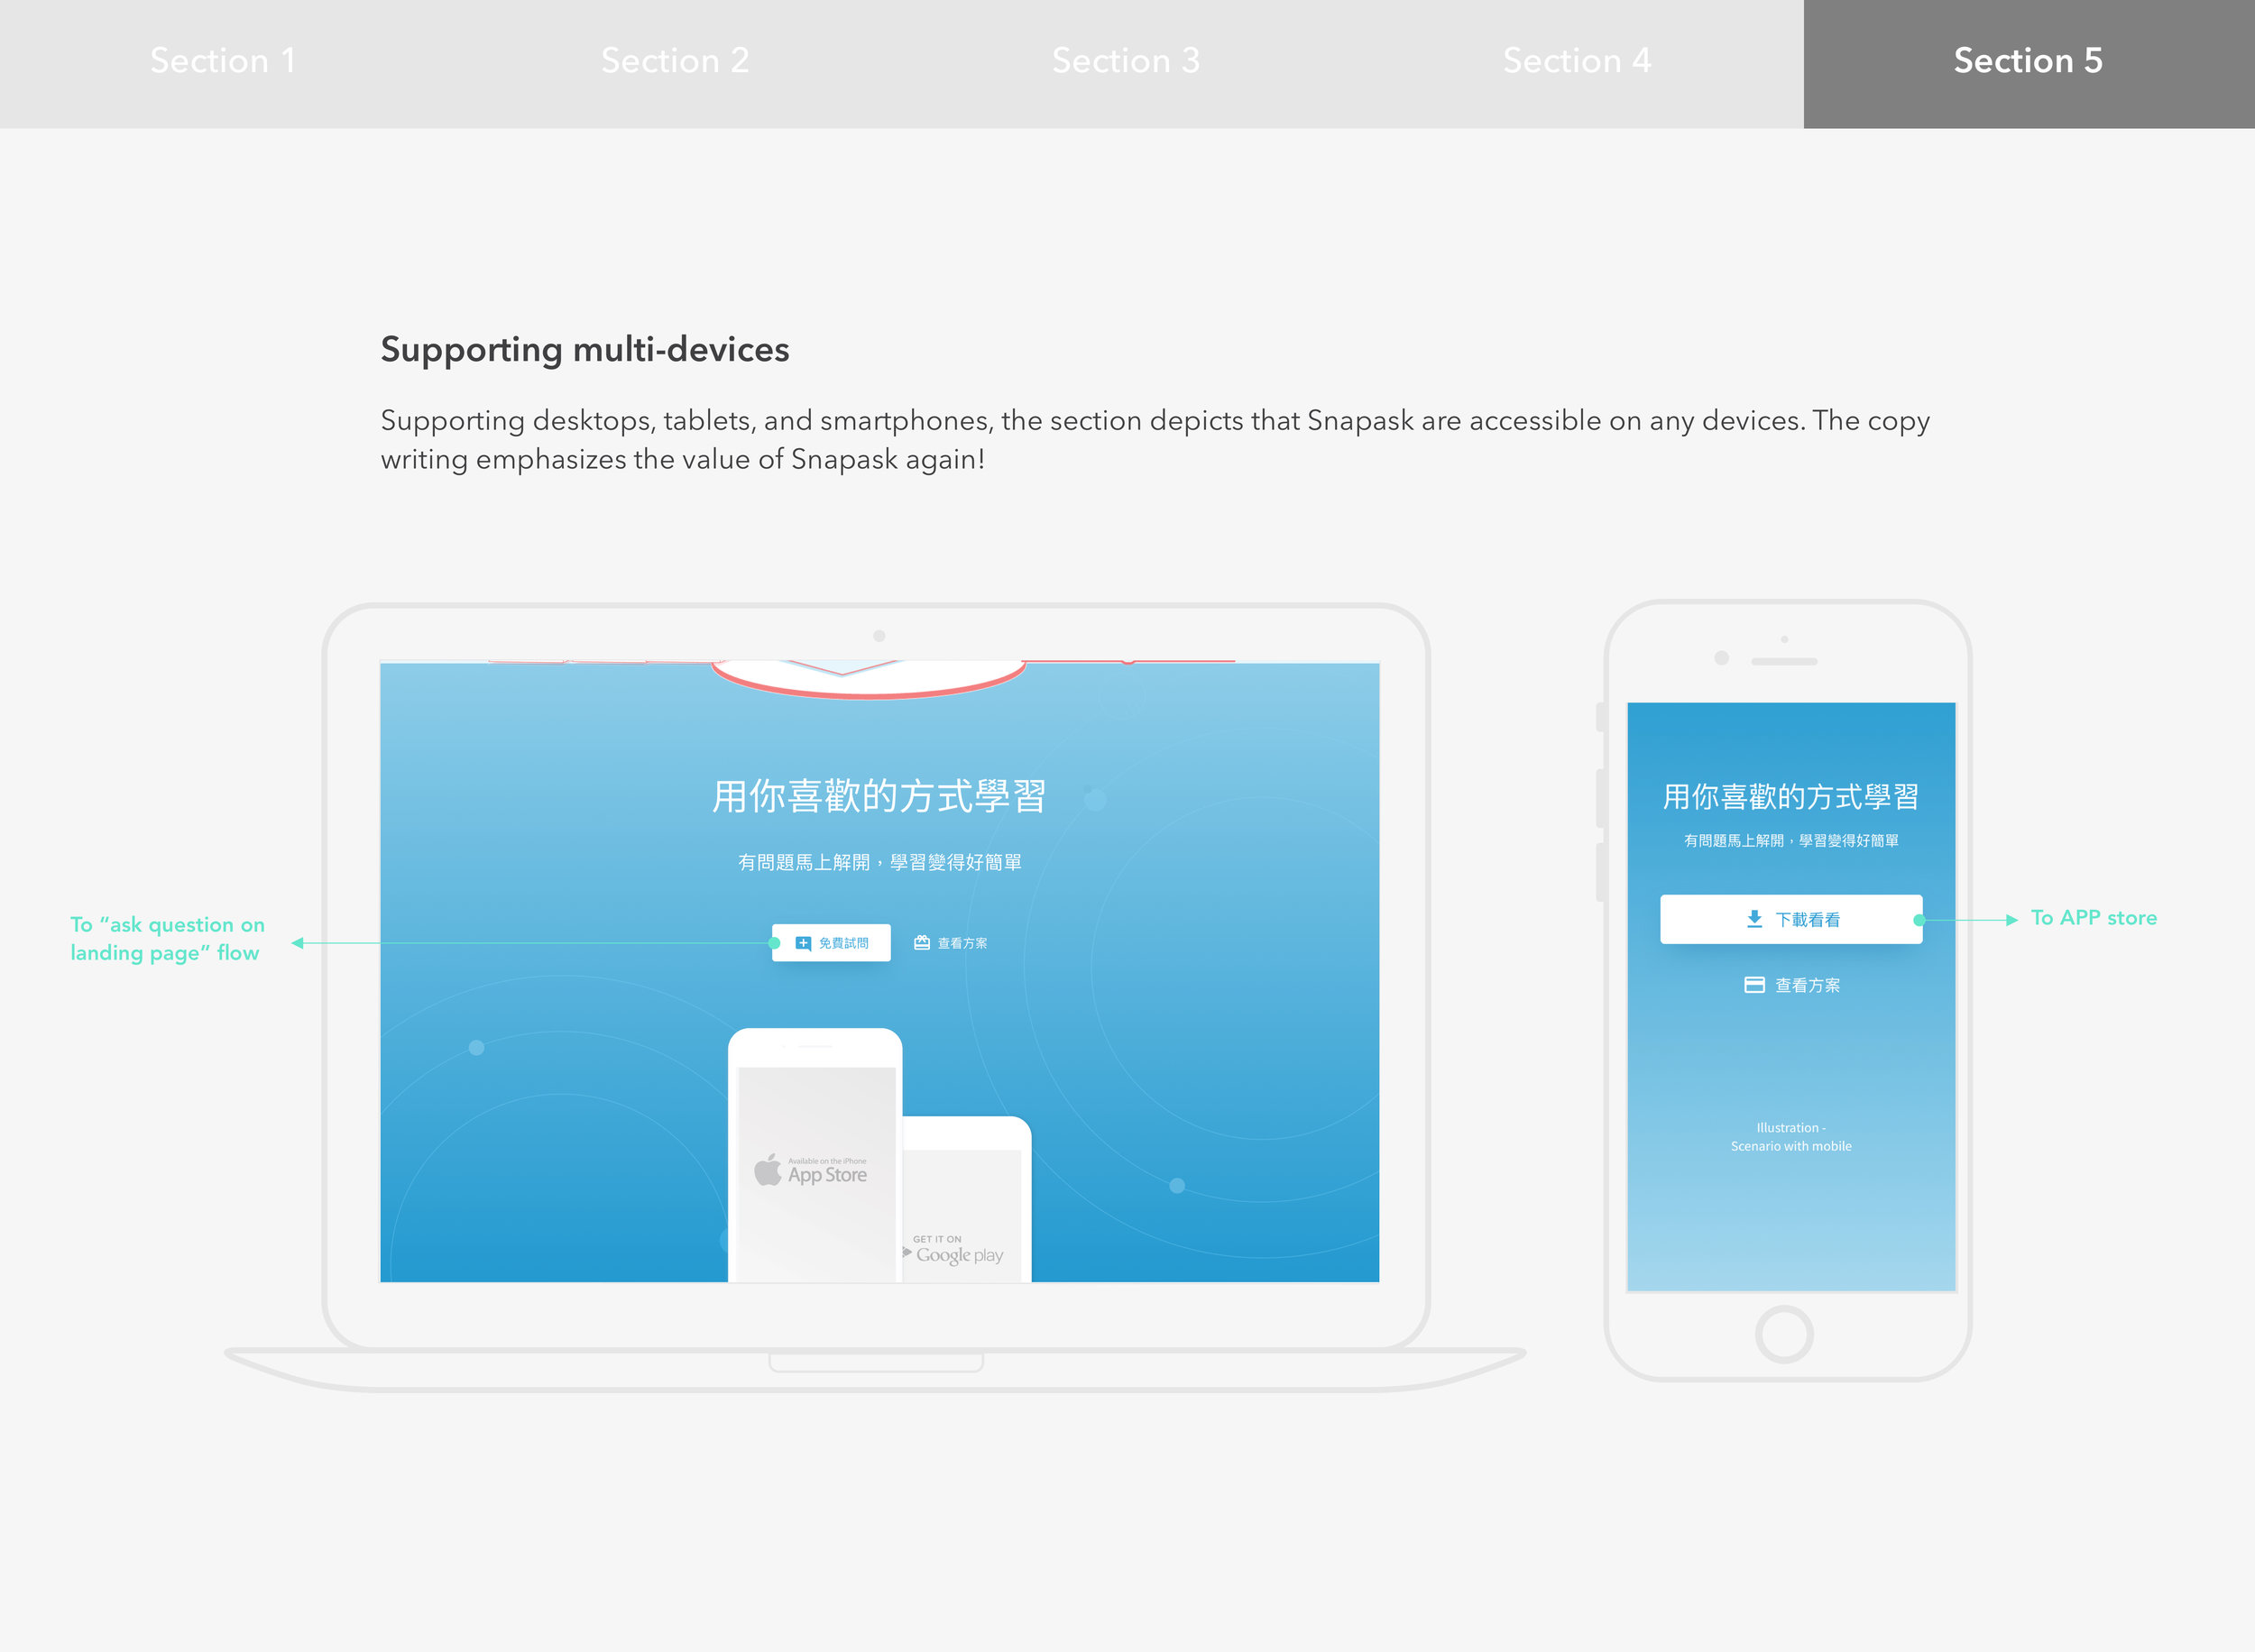 Snapask_Landing page_wireframe_05.jpg